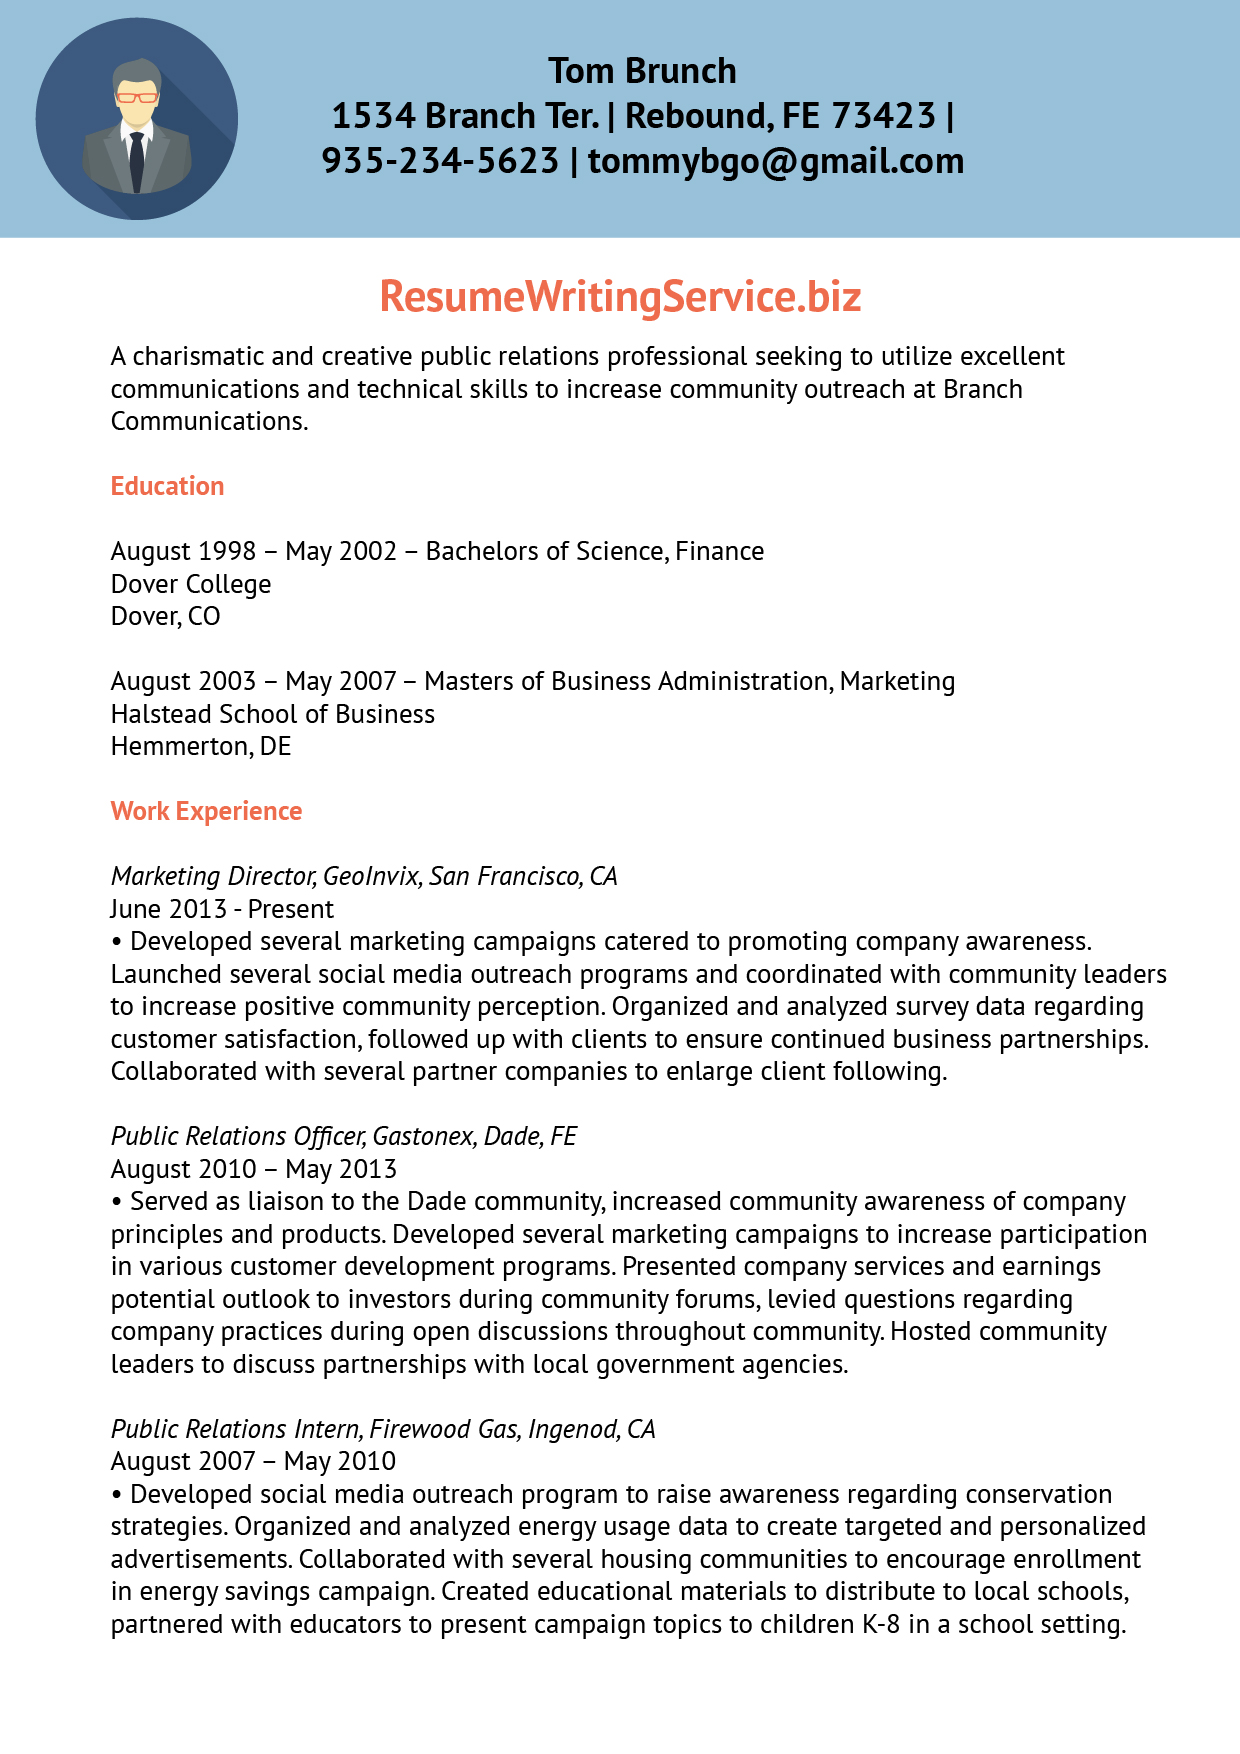 public relations manager resume sample - Sample Public Relations Manager Resume